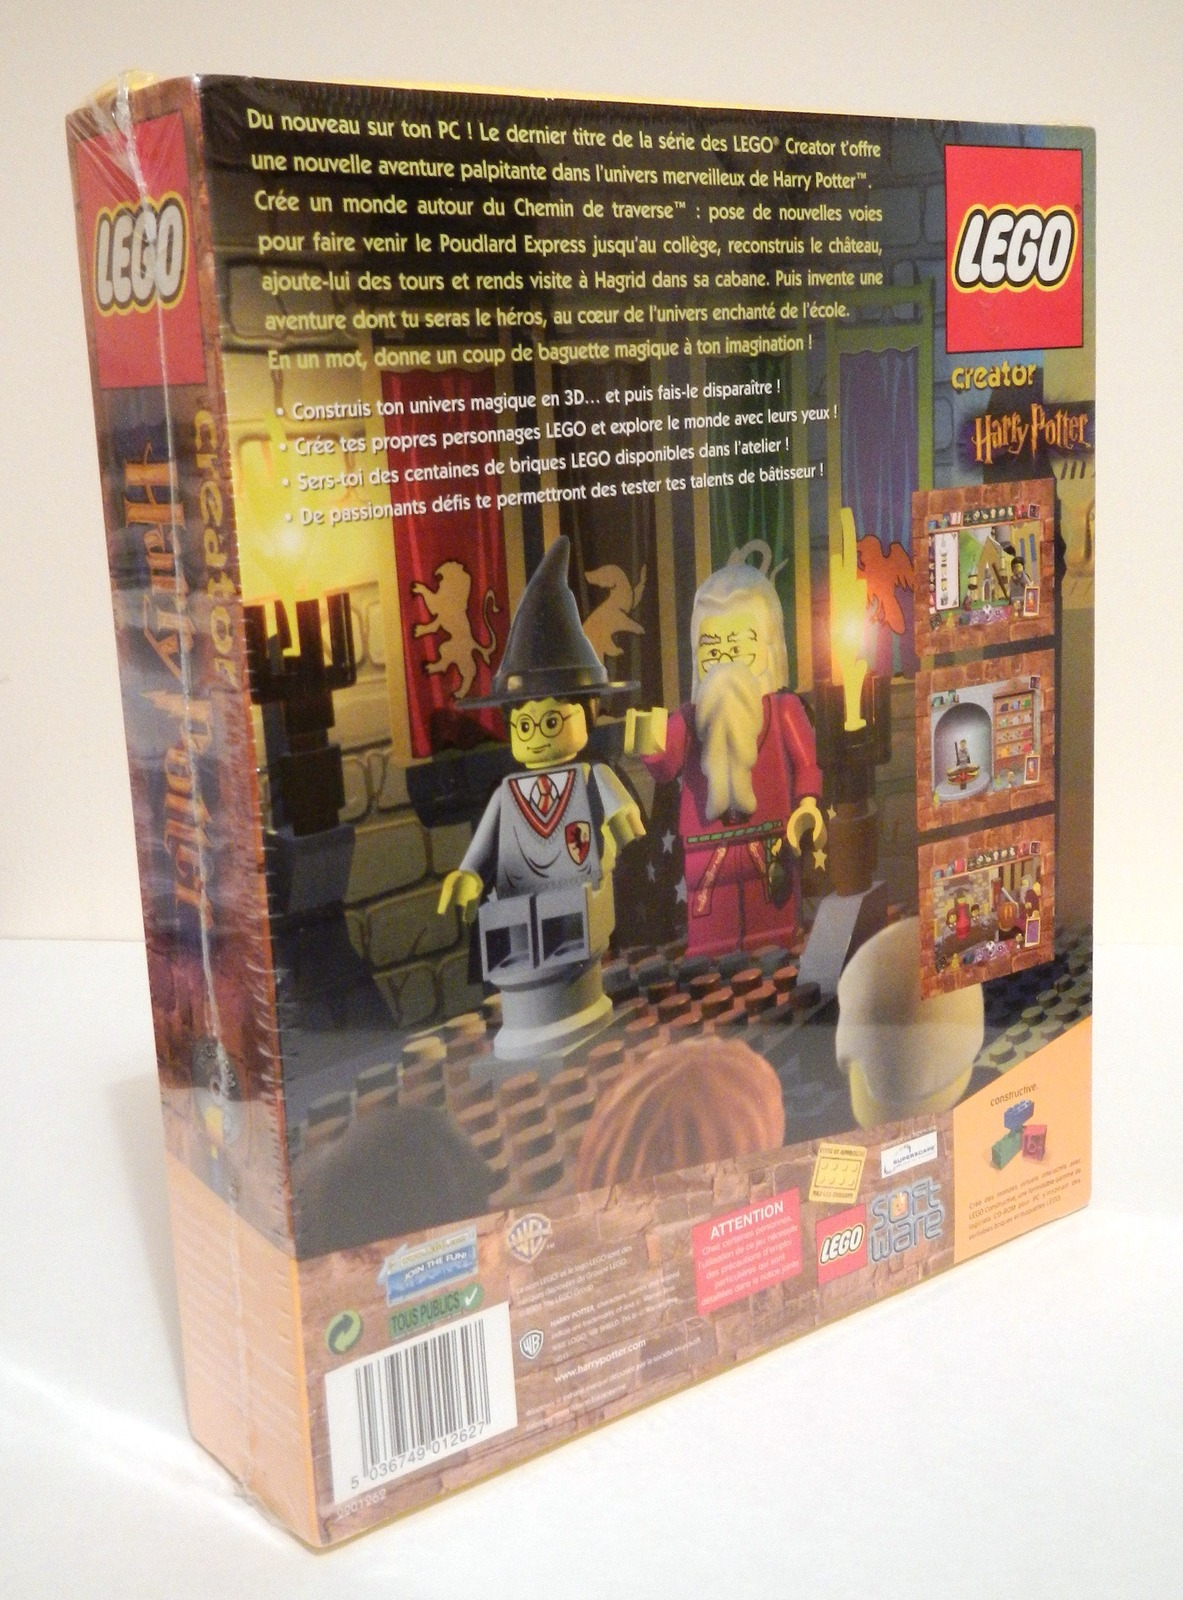 Lego Creator Harry Potter PC CD Rom FRENCH Edition NEW - 2001